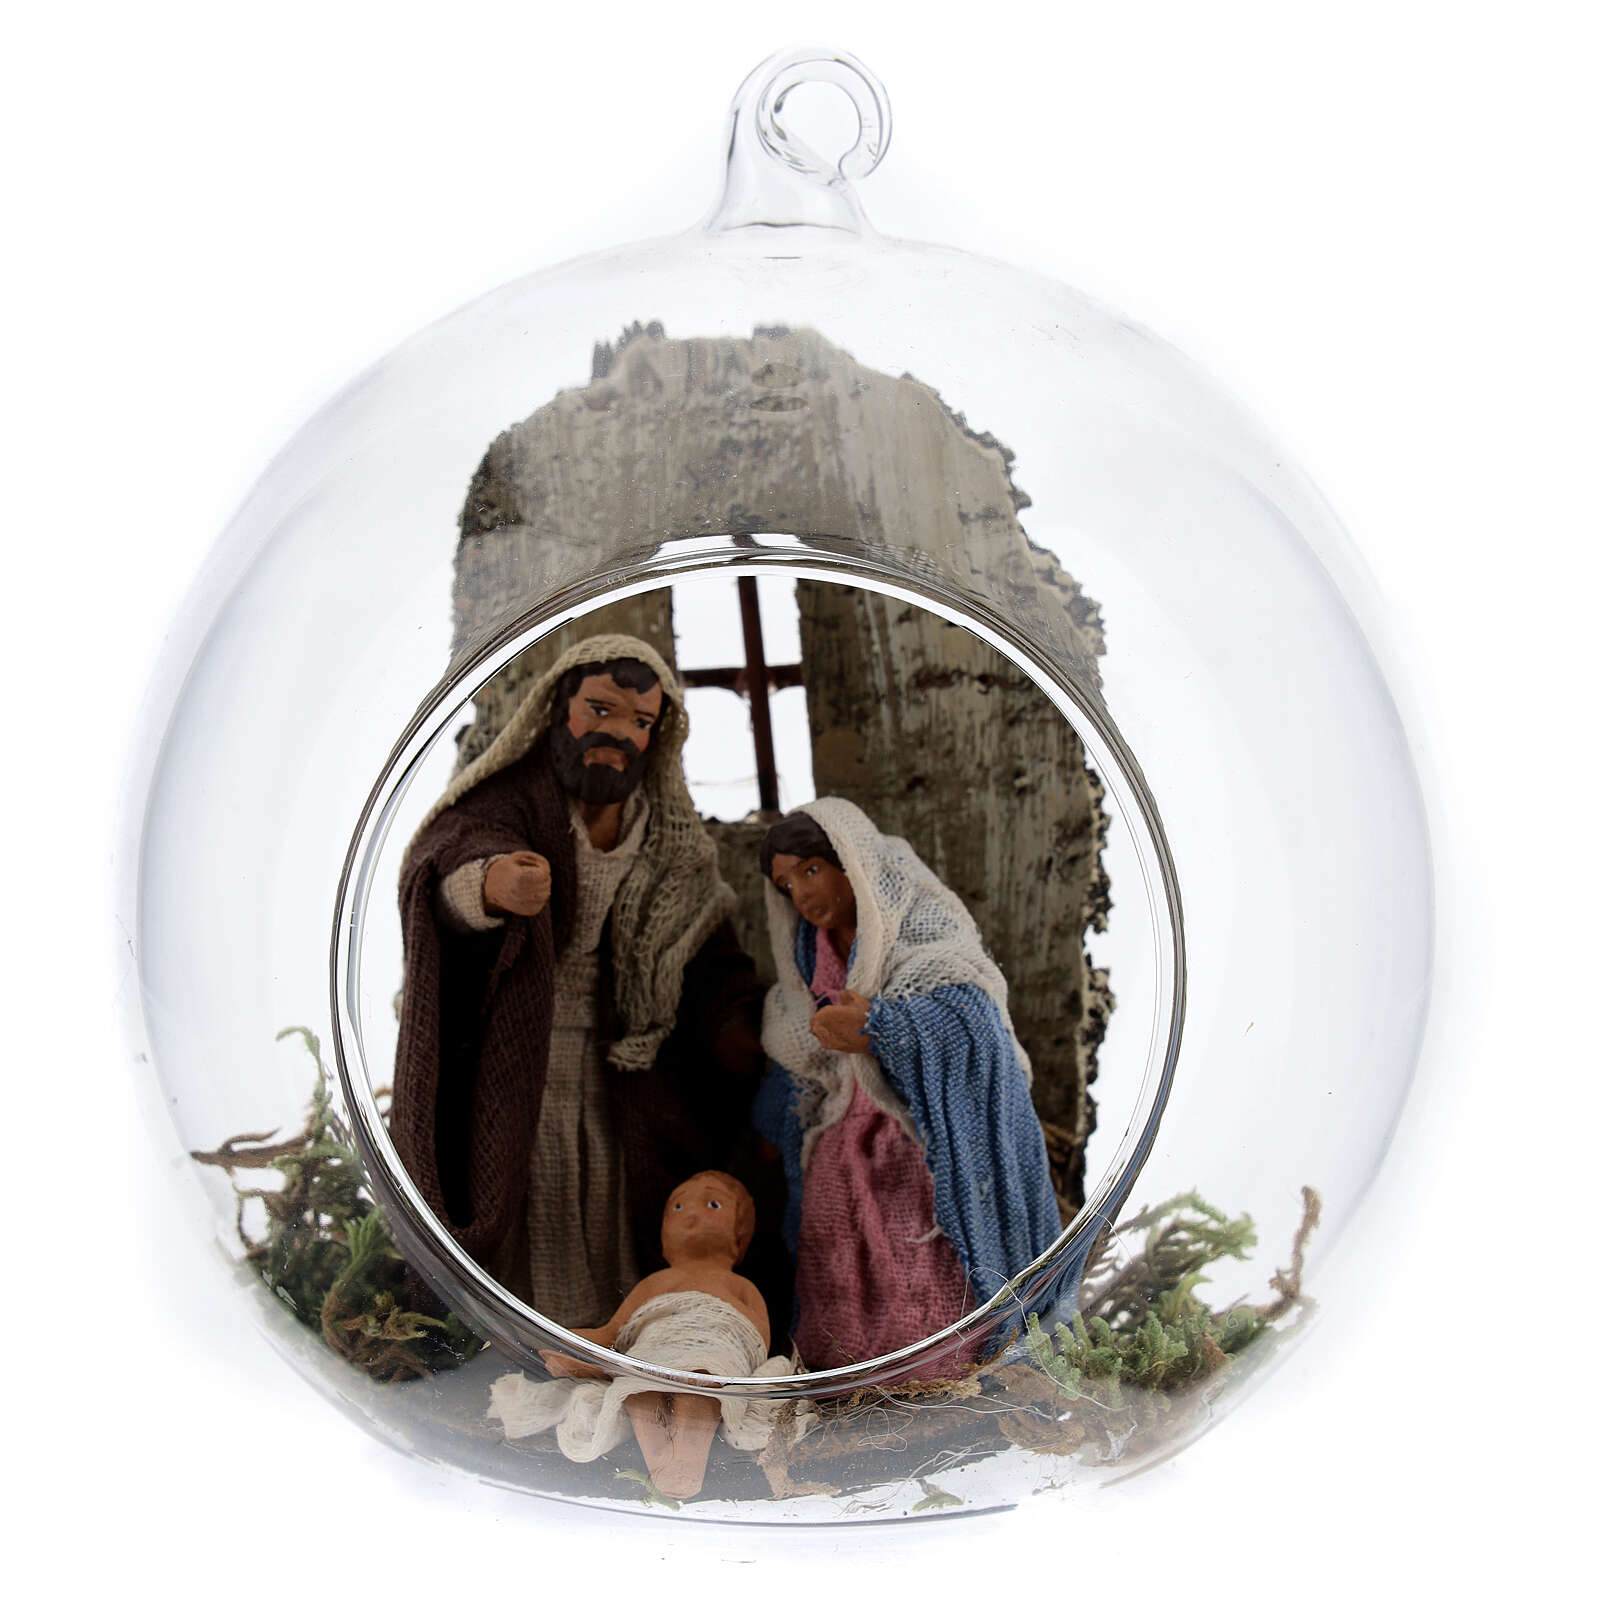 Nativity scene Holy Family in glass ball Neapolitan 10 cm 4